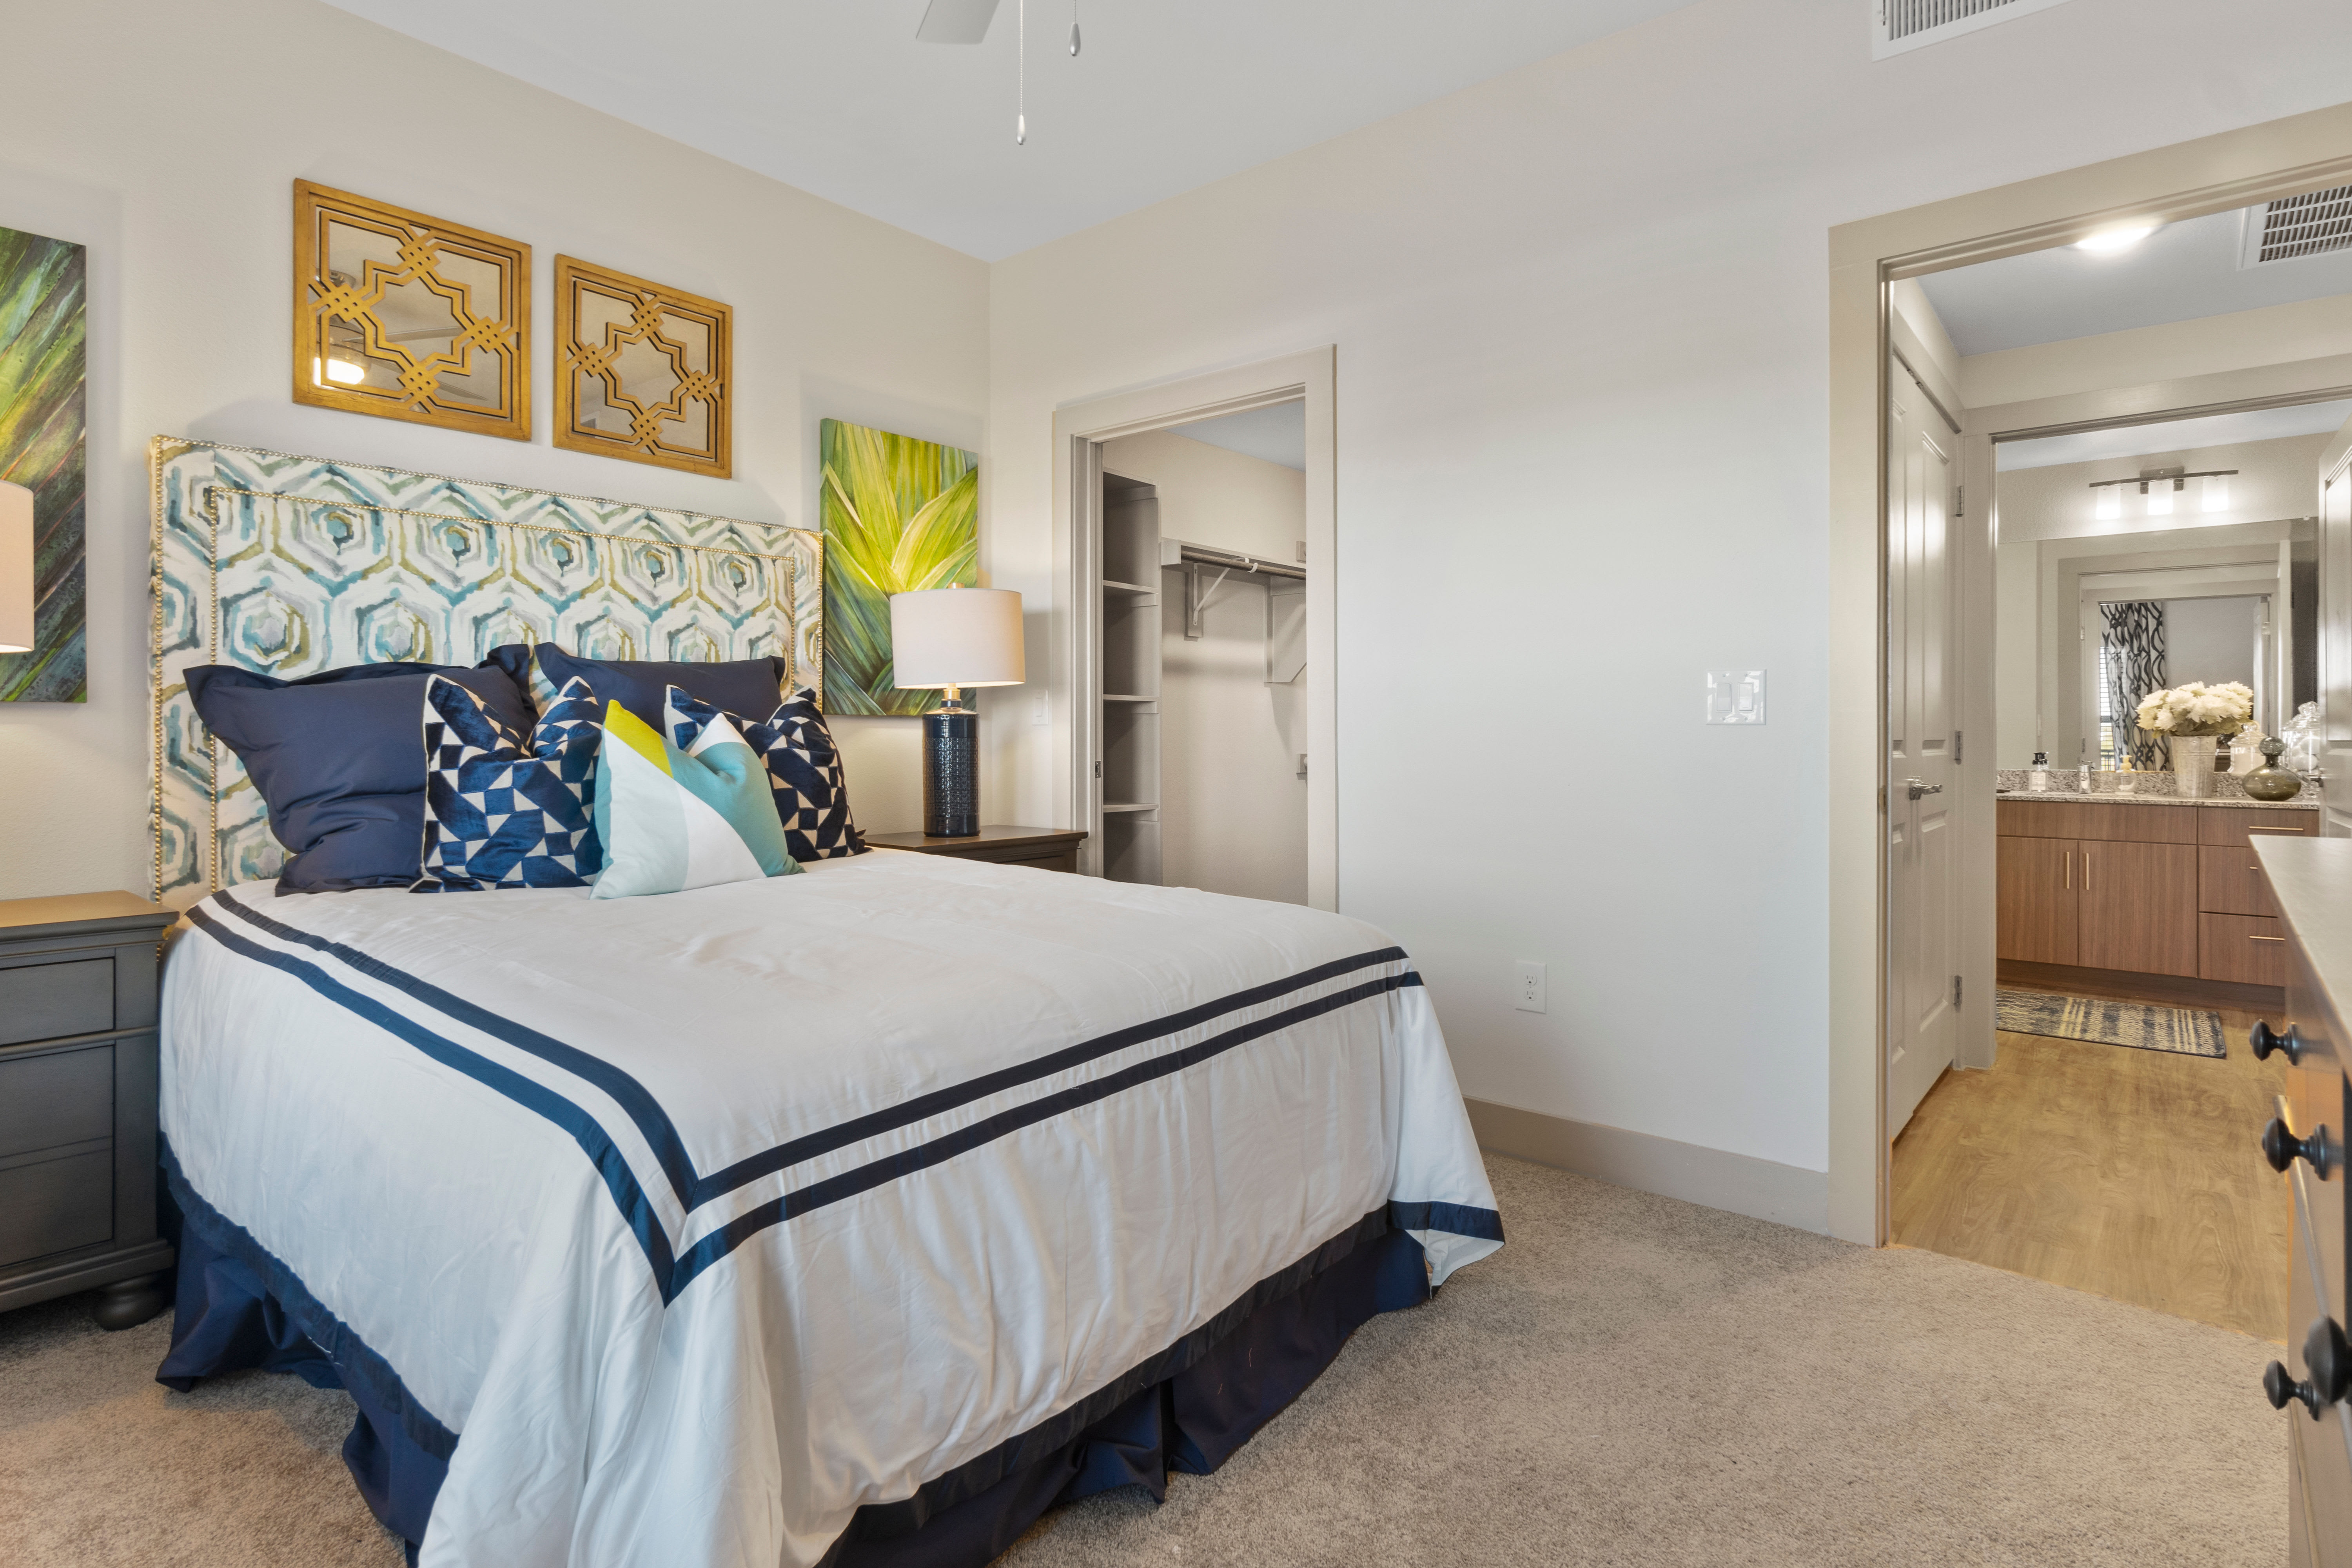 Bedroomwith plush carpeting at McCarty Commons in San Marcos, Texas